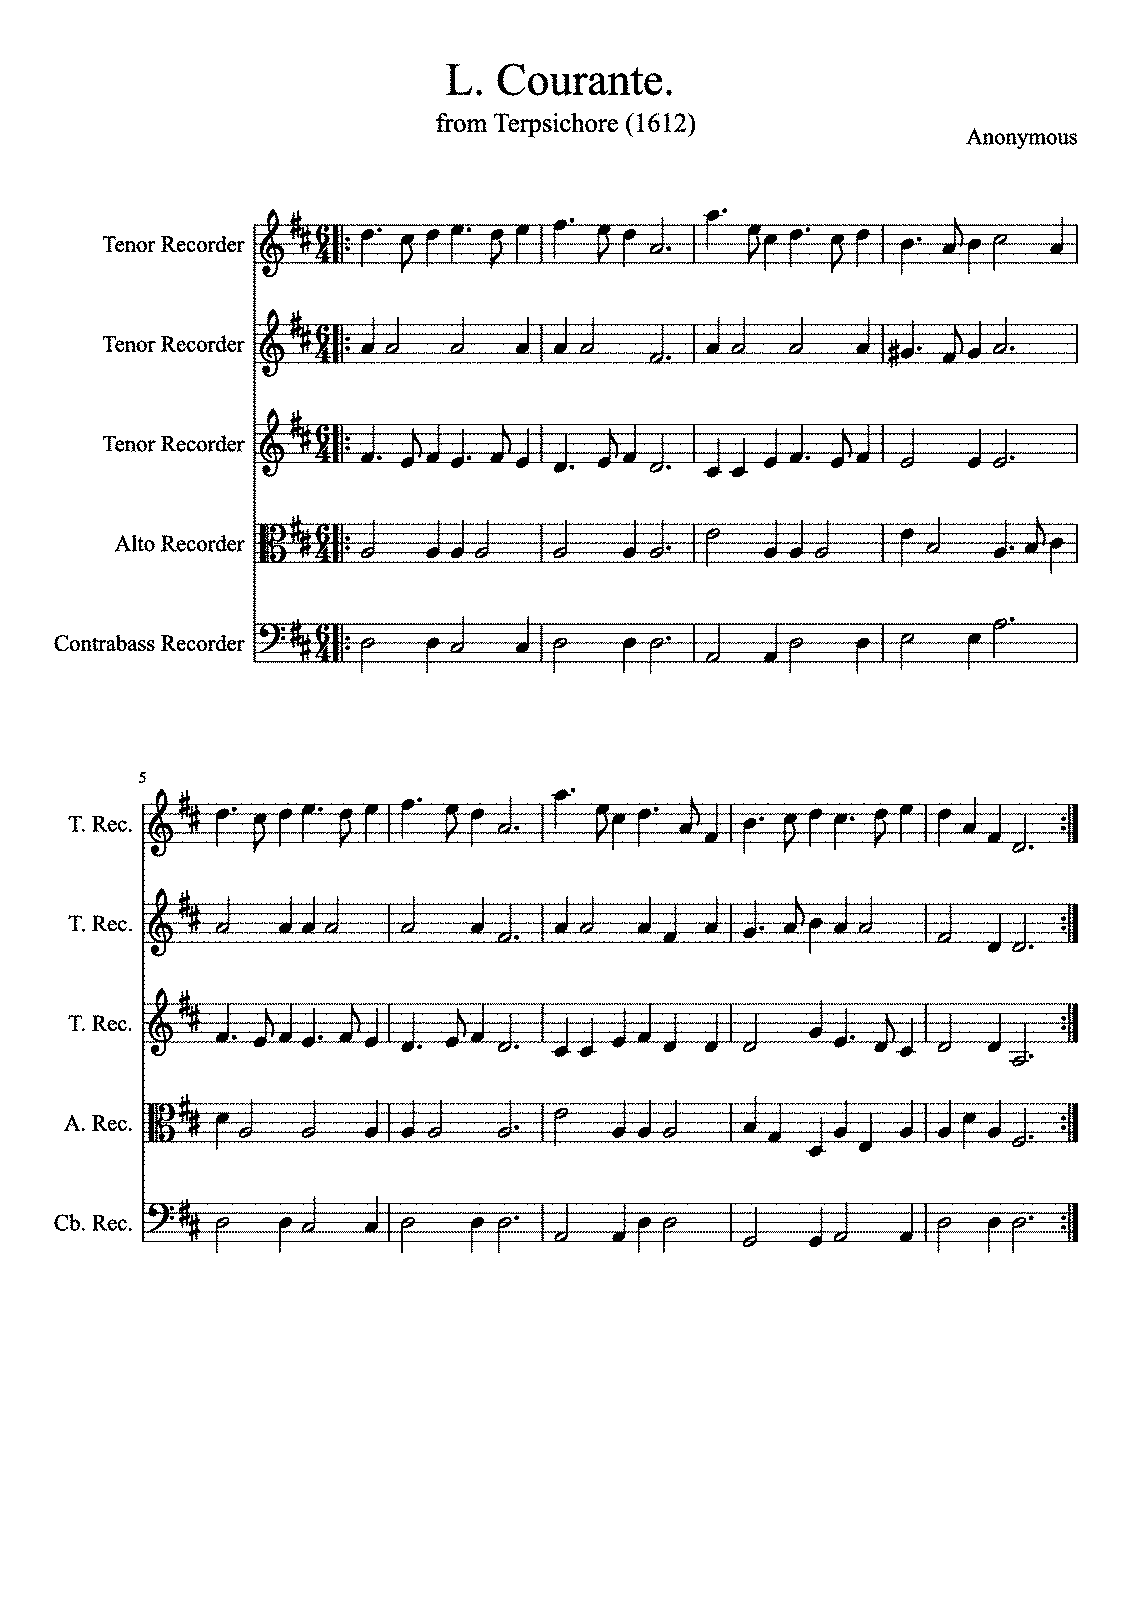 PMLP588043-L Courante from Terpsichore Anonymous 1612.pdf